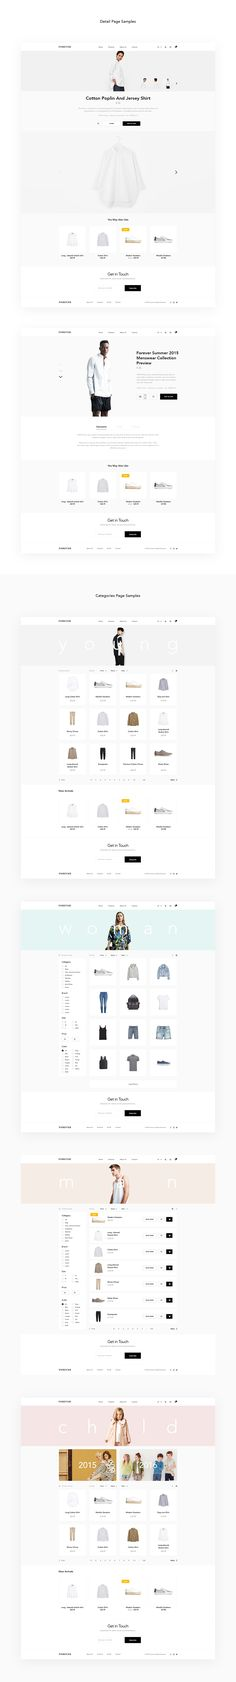 The Best Modern Fashion Theme for Designers and DevelopersForever fashion theme is package has been created to meet the design needs of designers and developers.